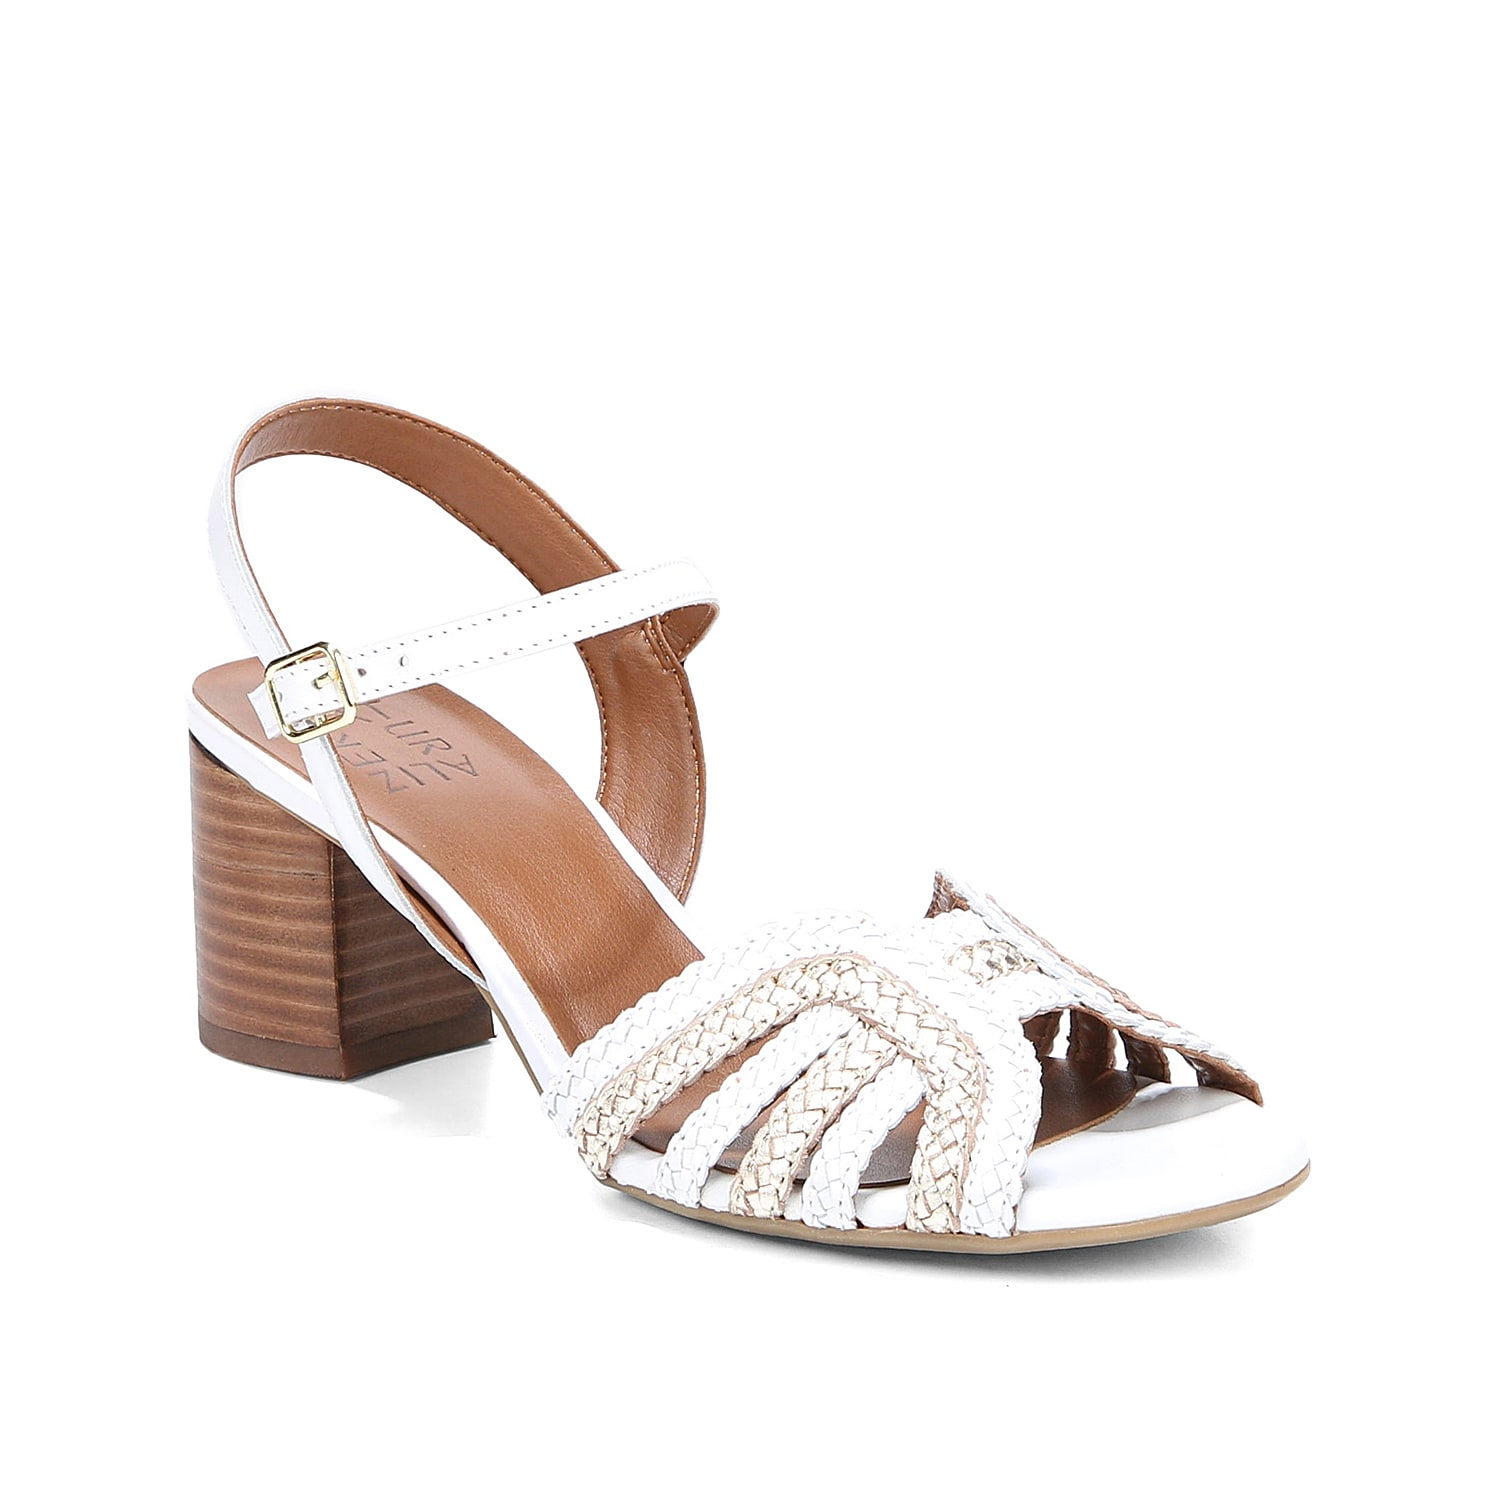 Step out in charming style with the Kingston sandal from Naturalizer. This pair features braided straps and a chunky block heel for eye-catching appeal.